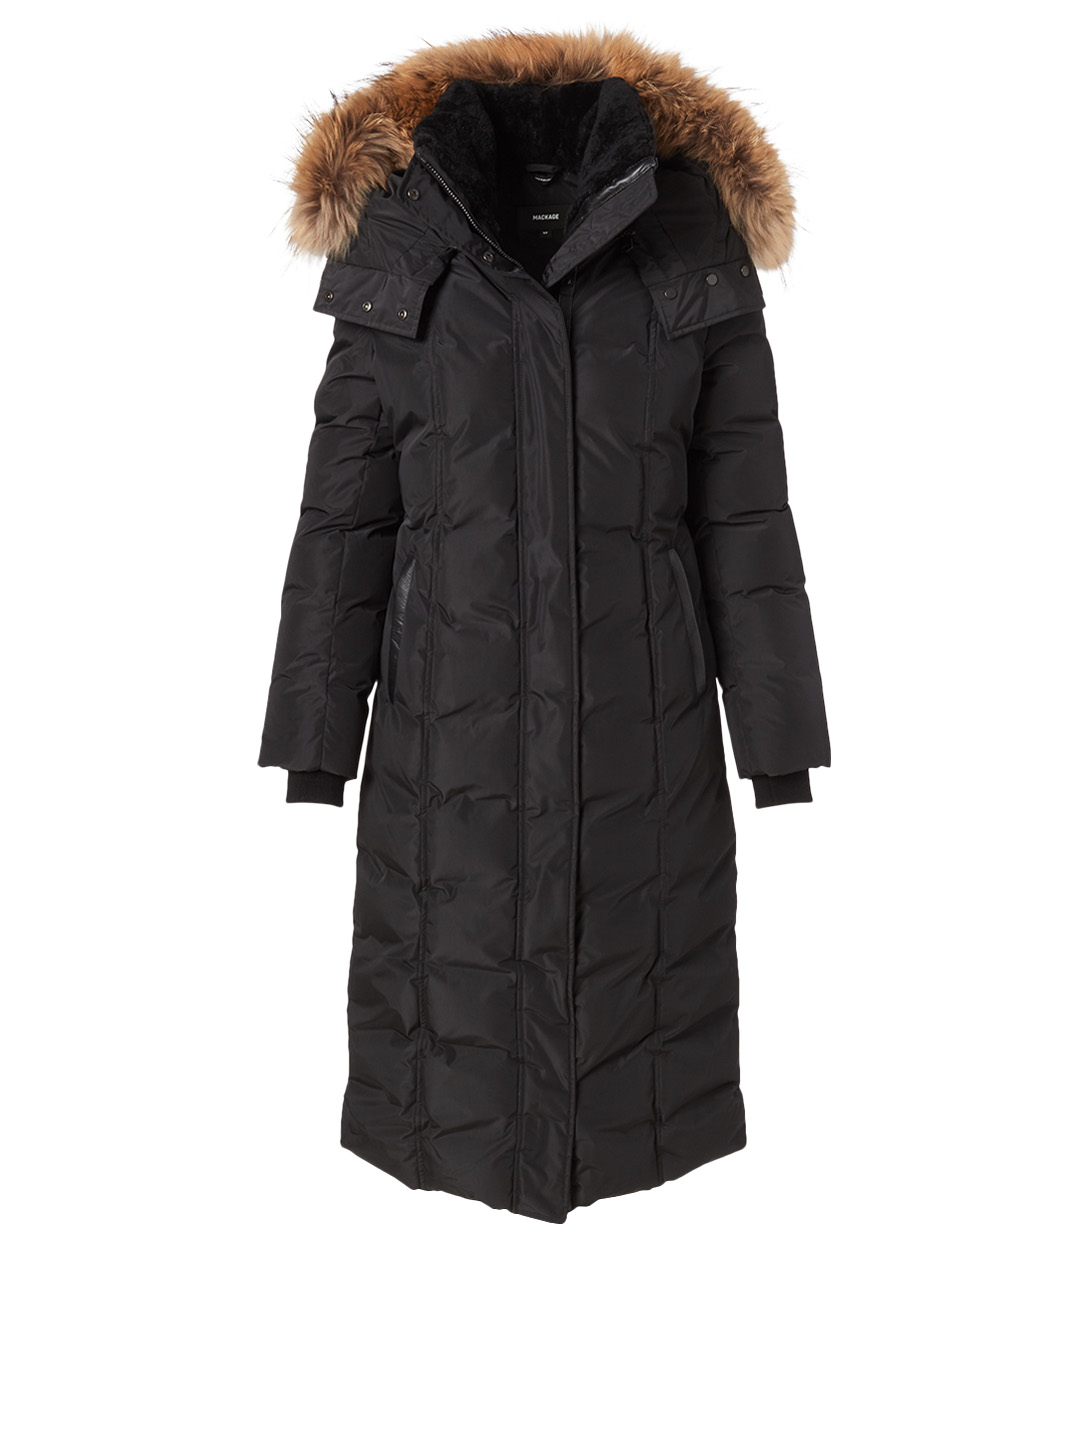 MACKAGE Jada Down Coat With Fur Hood Women's Black